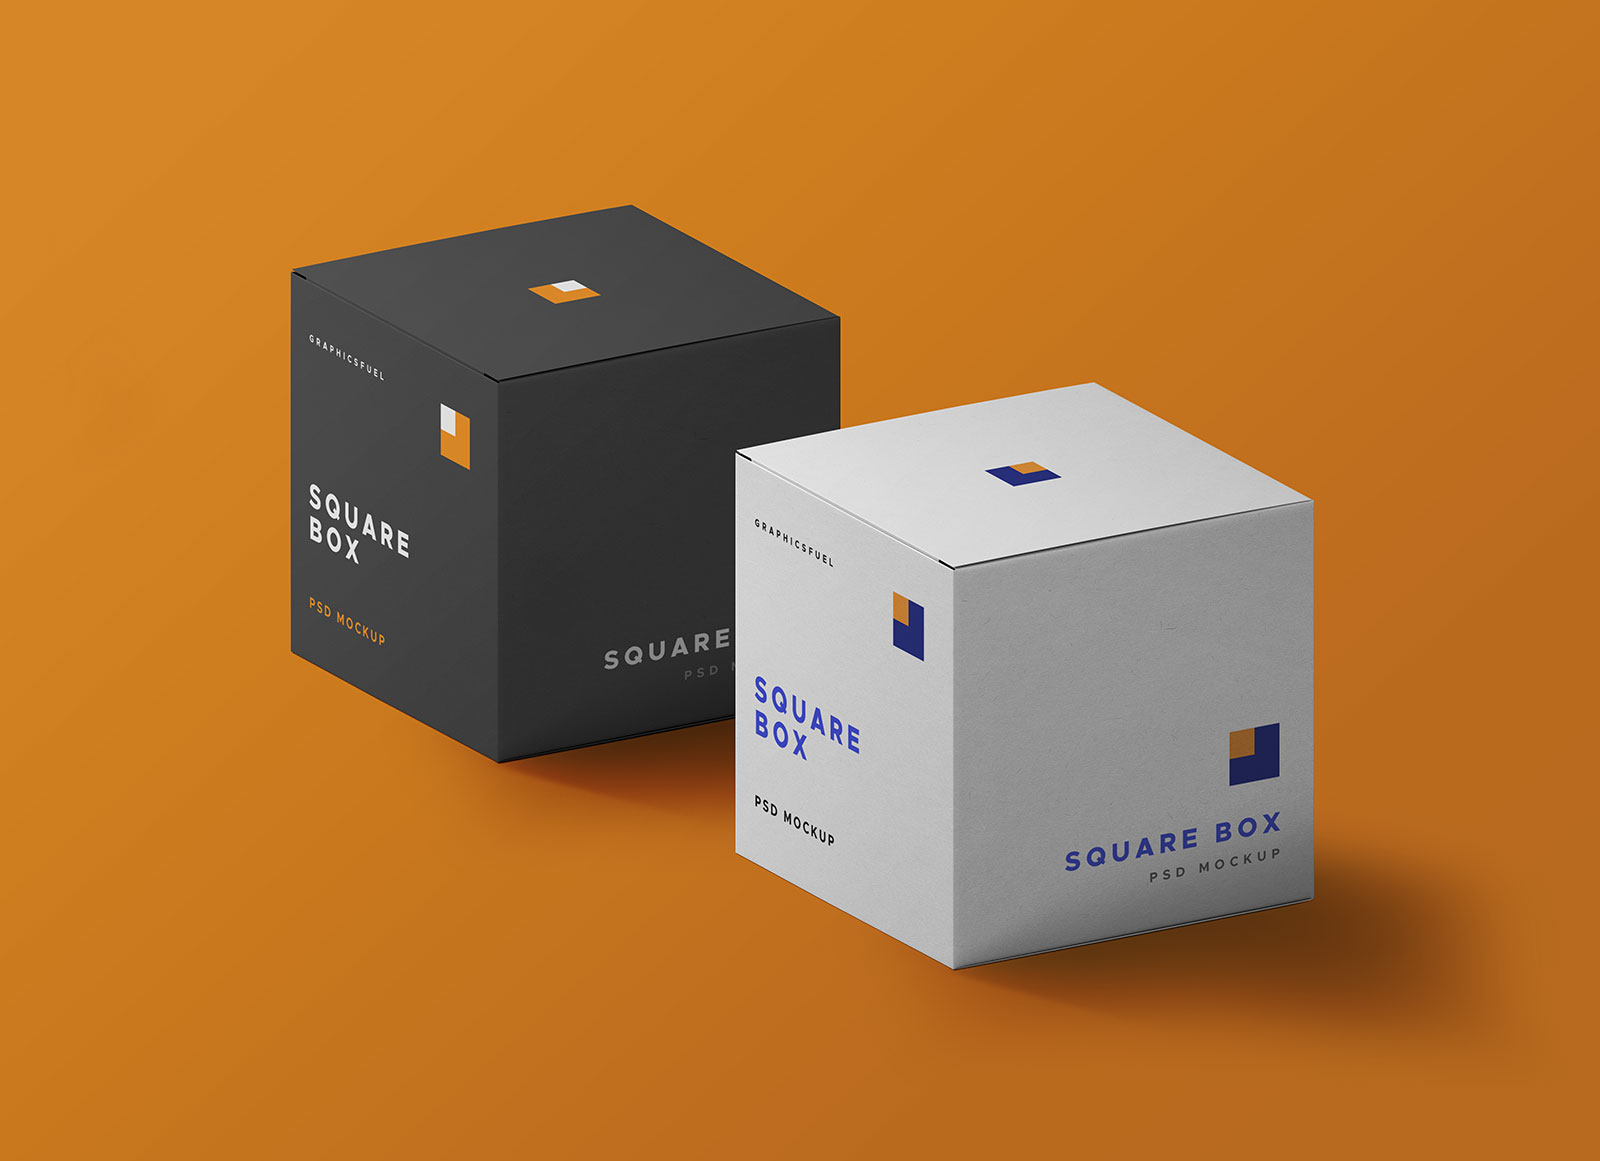 Free-Square-Box-Packaging-Mockup-PSD